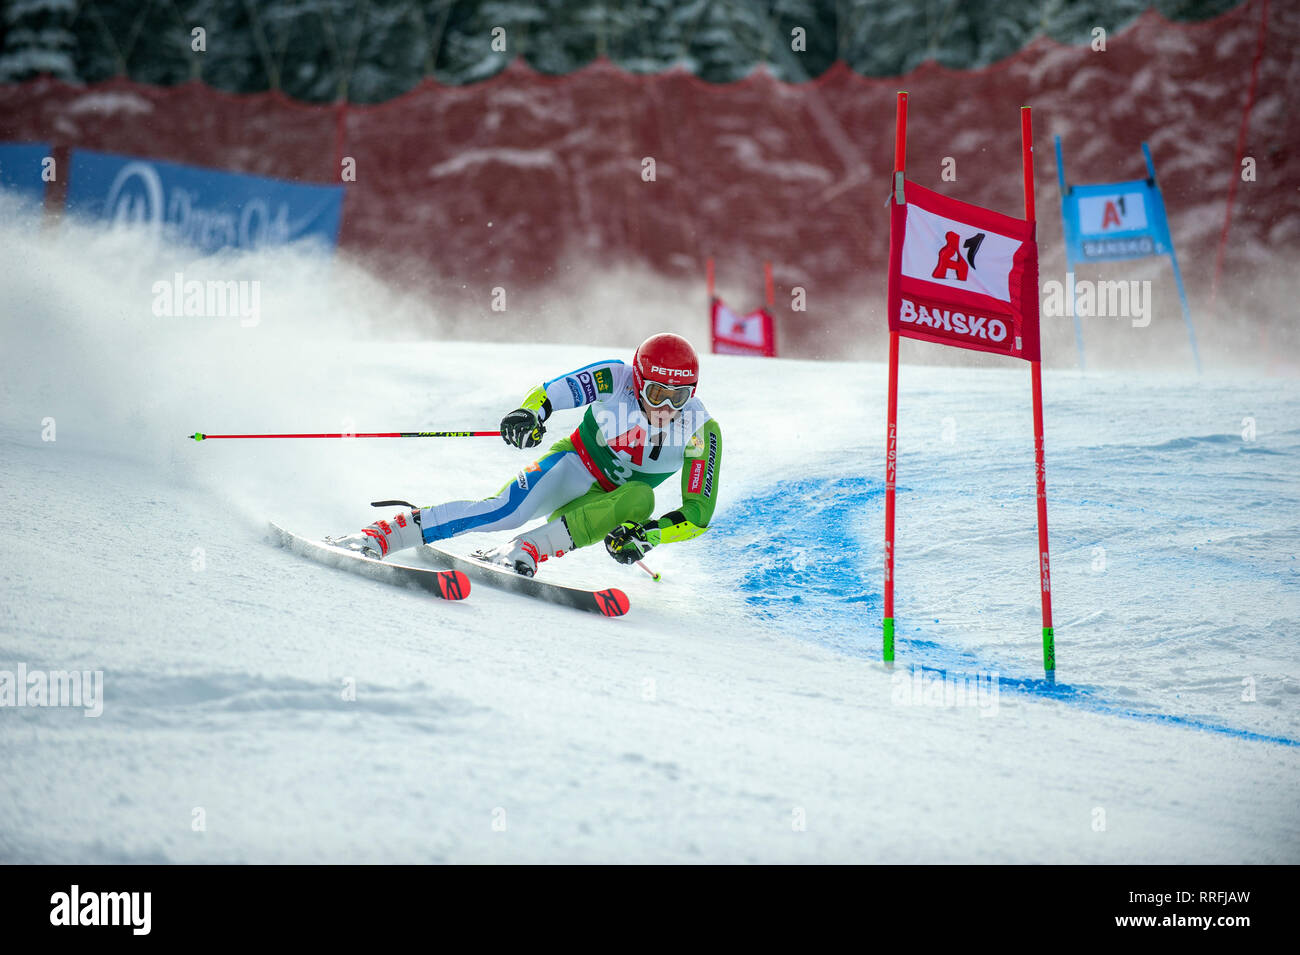 Bansko, Bulgaria. 24th Feb 2019. Zan Kranjec (SLO) competing in Audi FIS Alpine Ski World Cup Men's Giant Slalom on February 24, 2019 in Bansko, Bulgaria. Credit: Borislav Stefanov/Alamy Live News Stock Photo